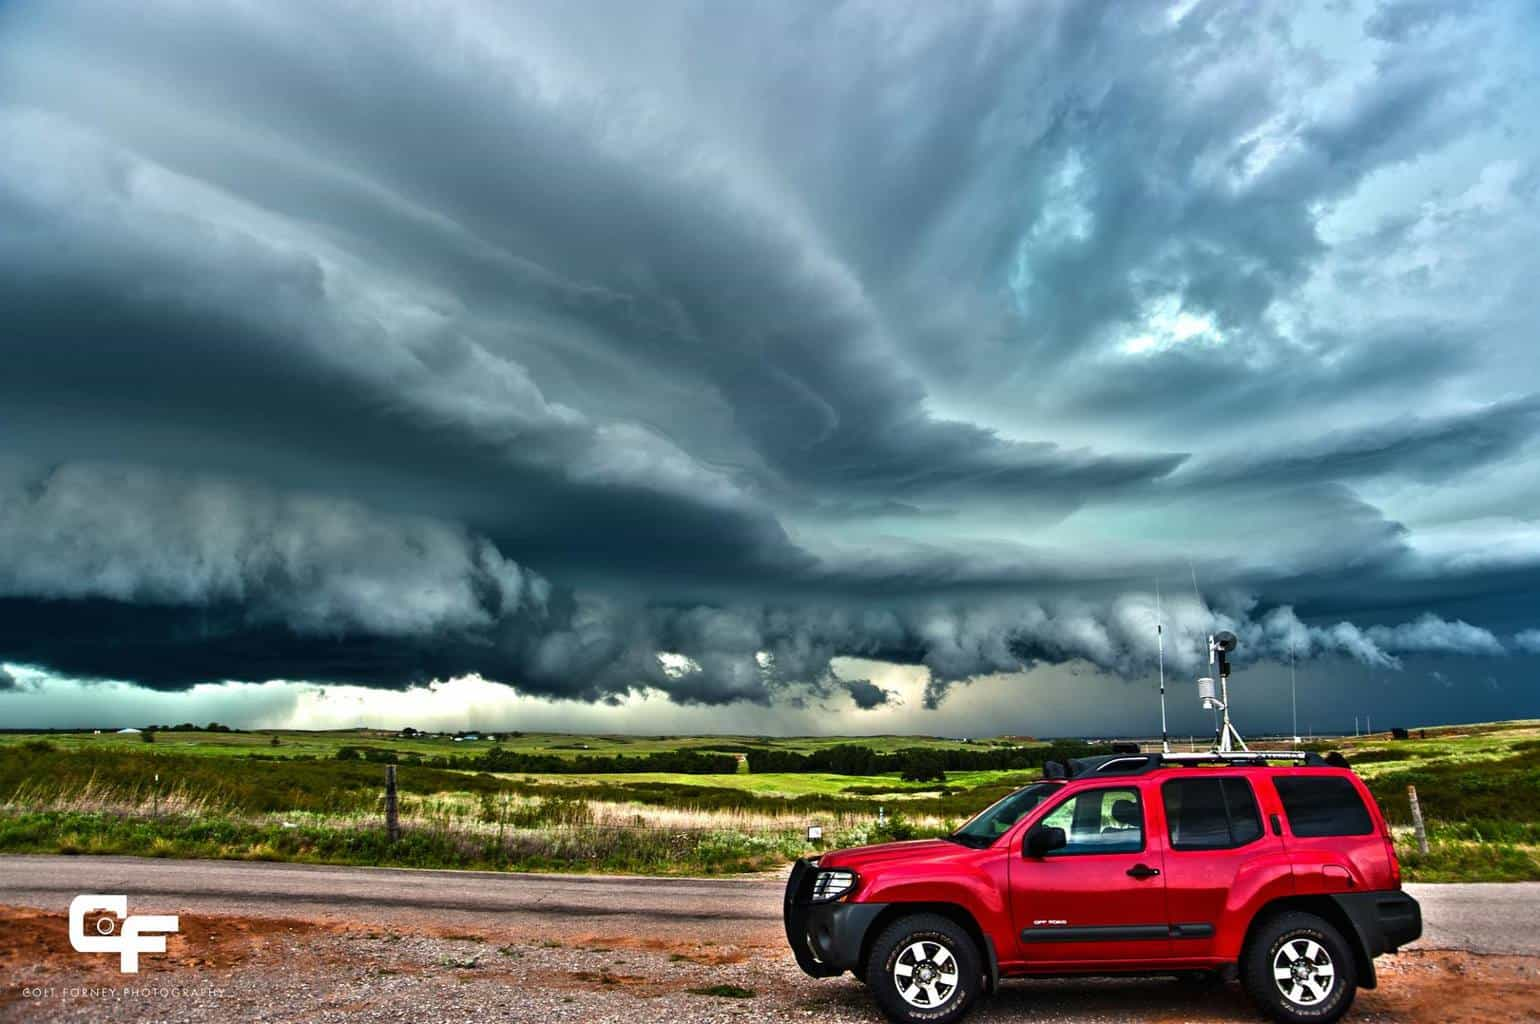 July 12, 2010 Putnam, OK Chase vehicle with incredible supercell. 2010 was such a great year!